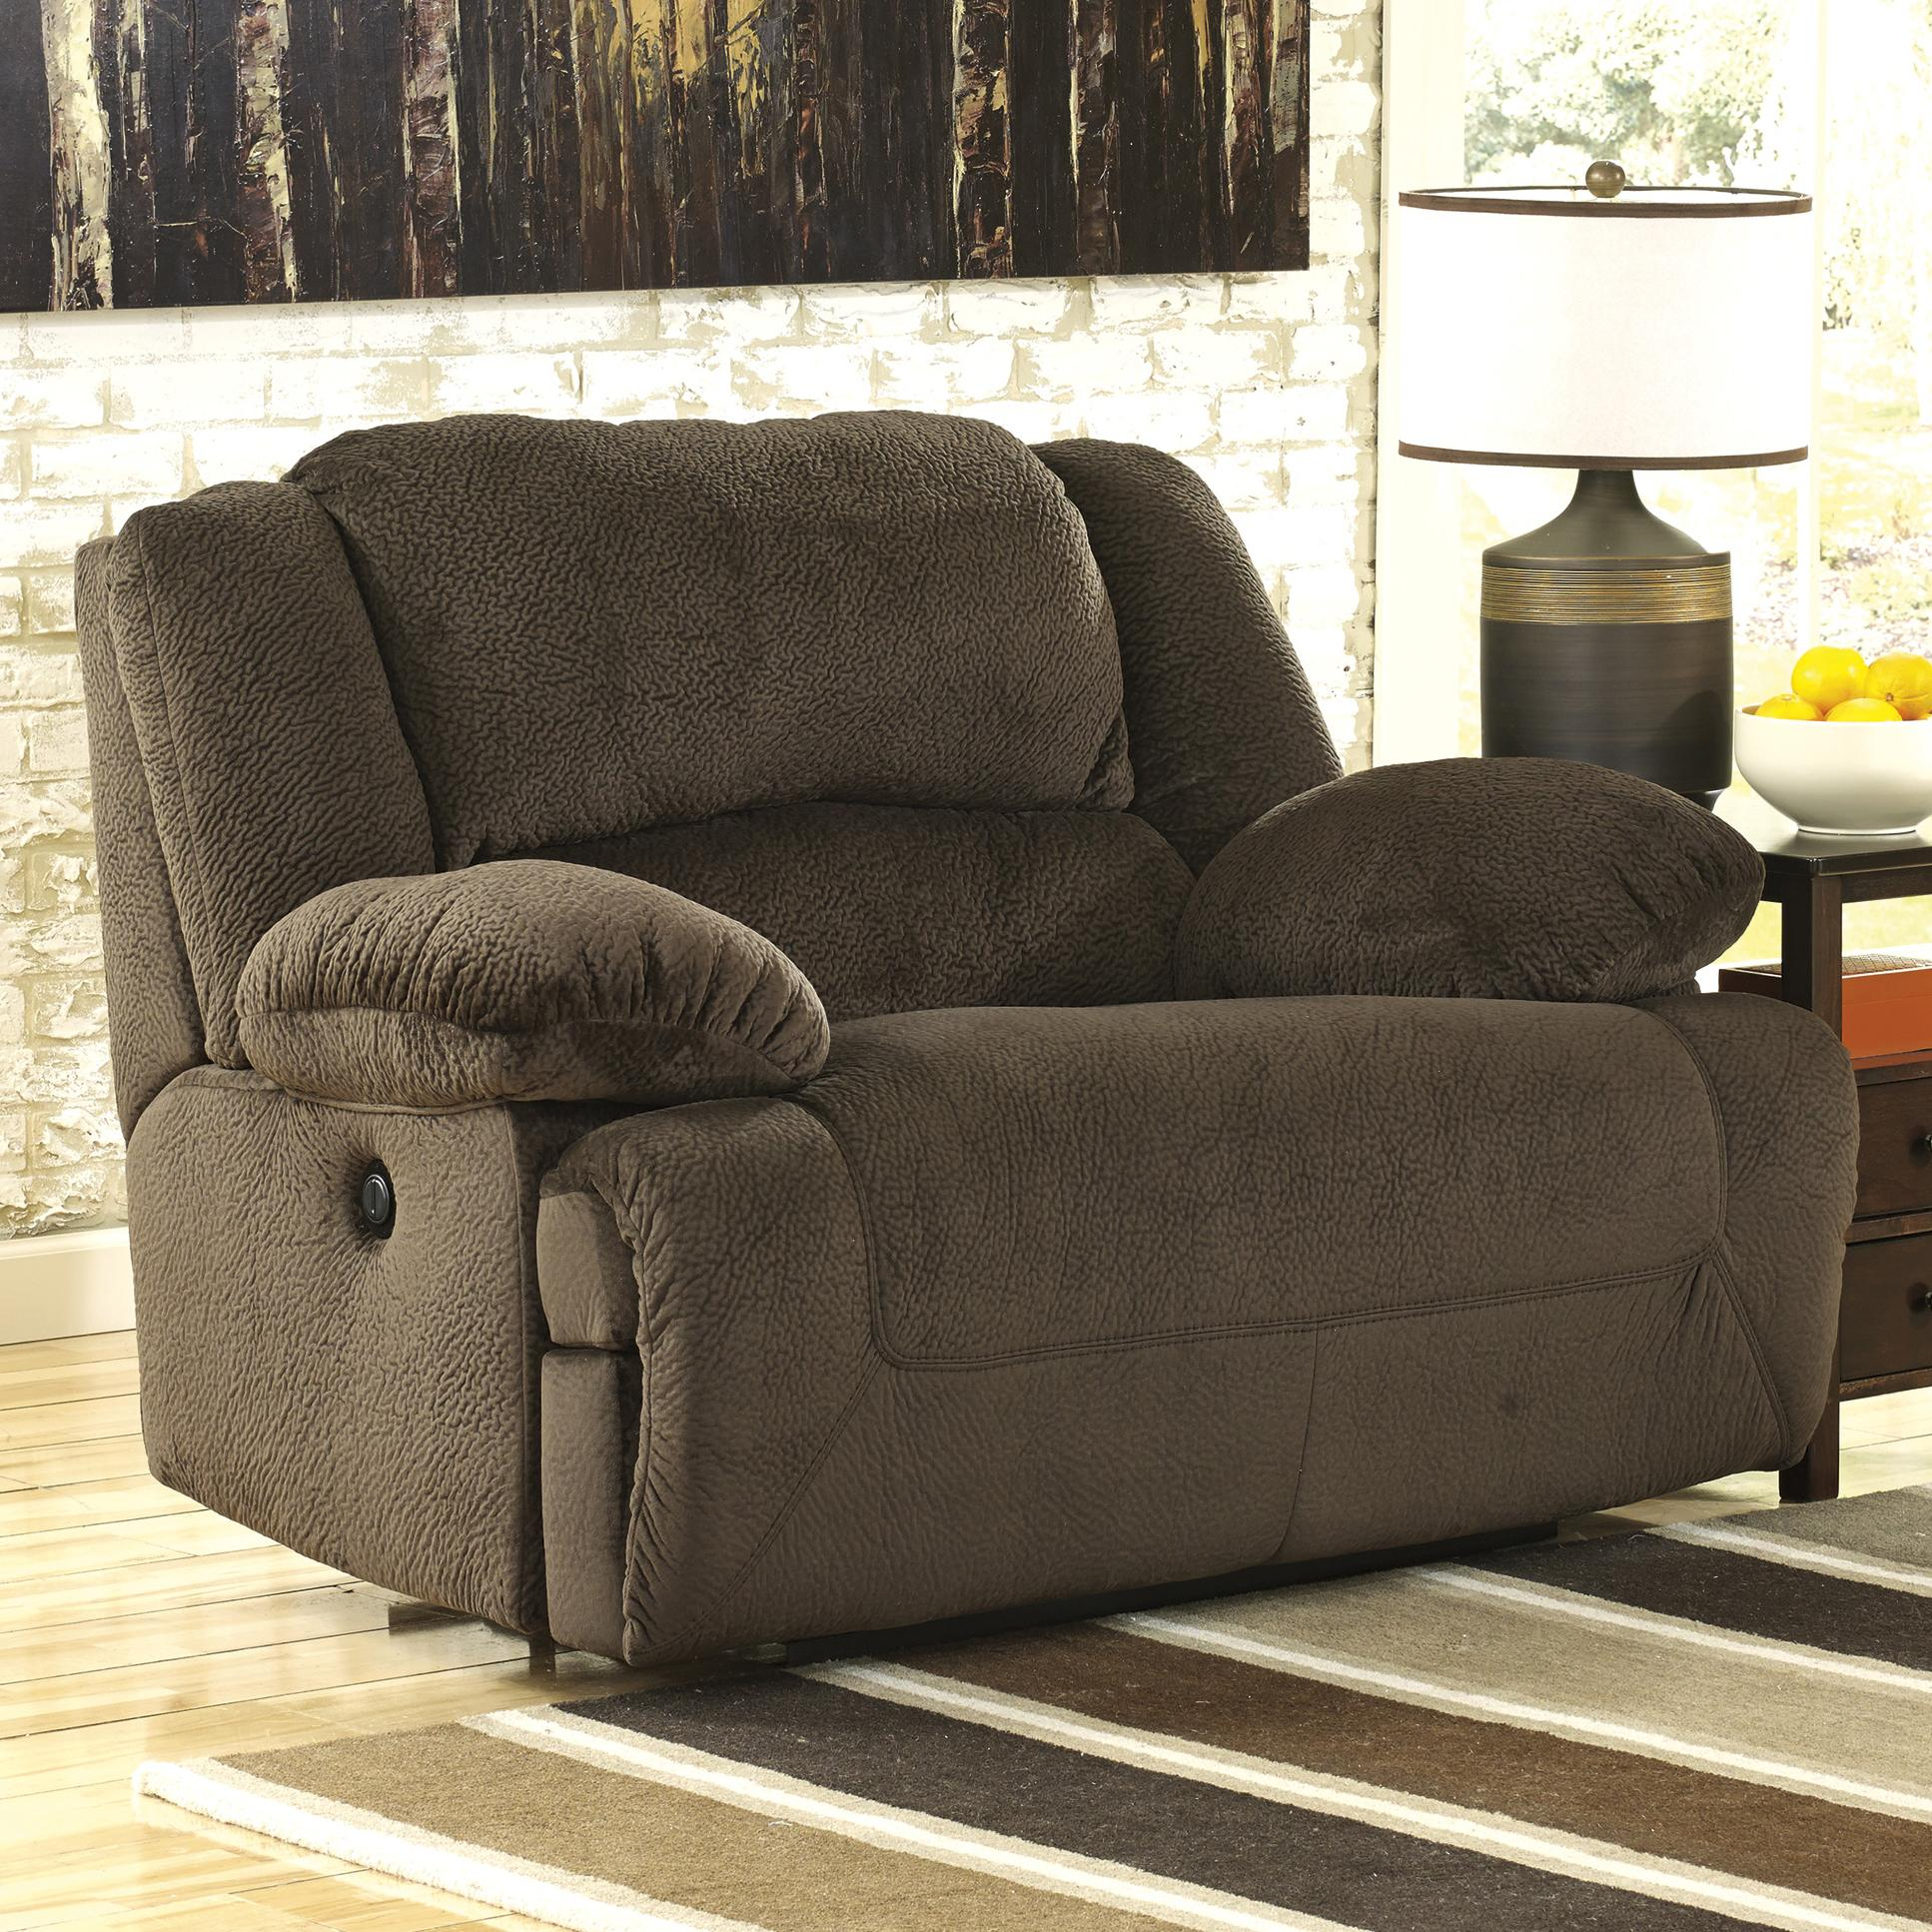 Signature design by ashley toletta chocolate 5670182 for Oversized reading chair for sale